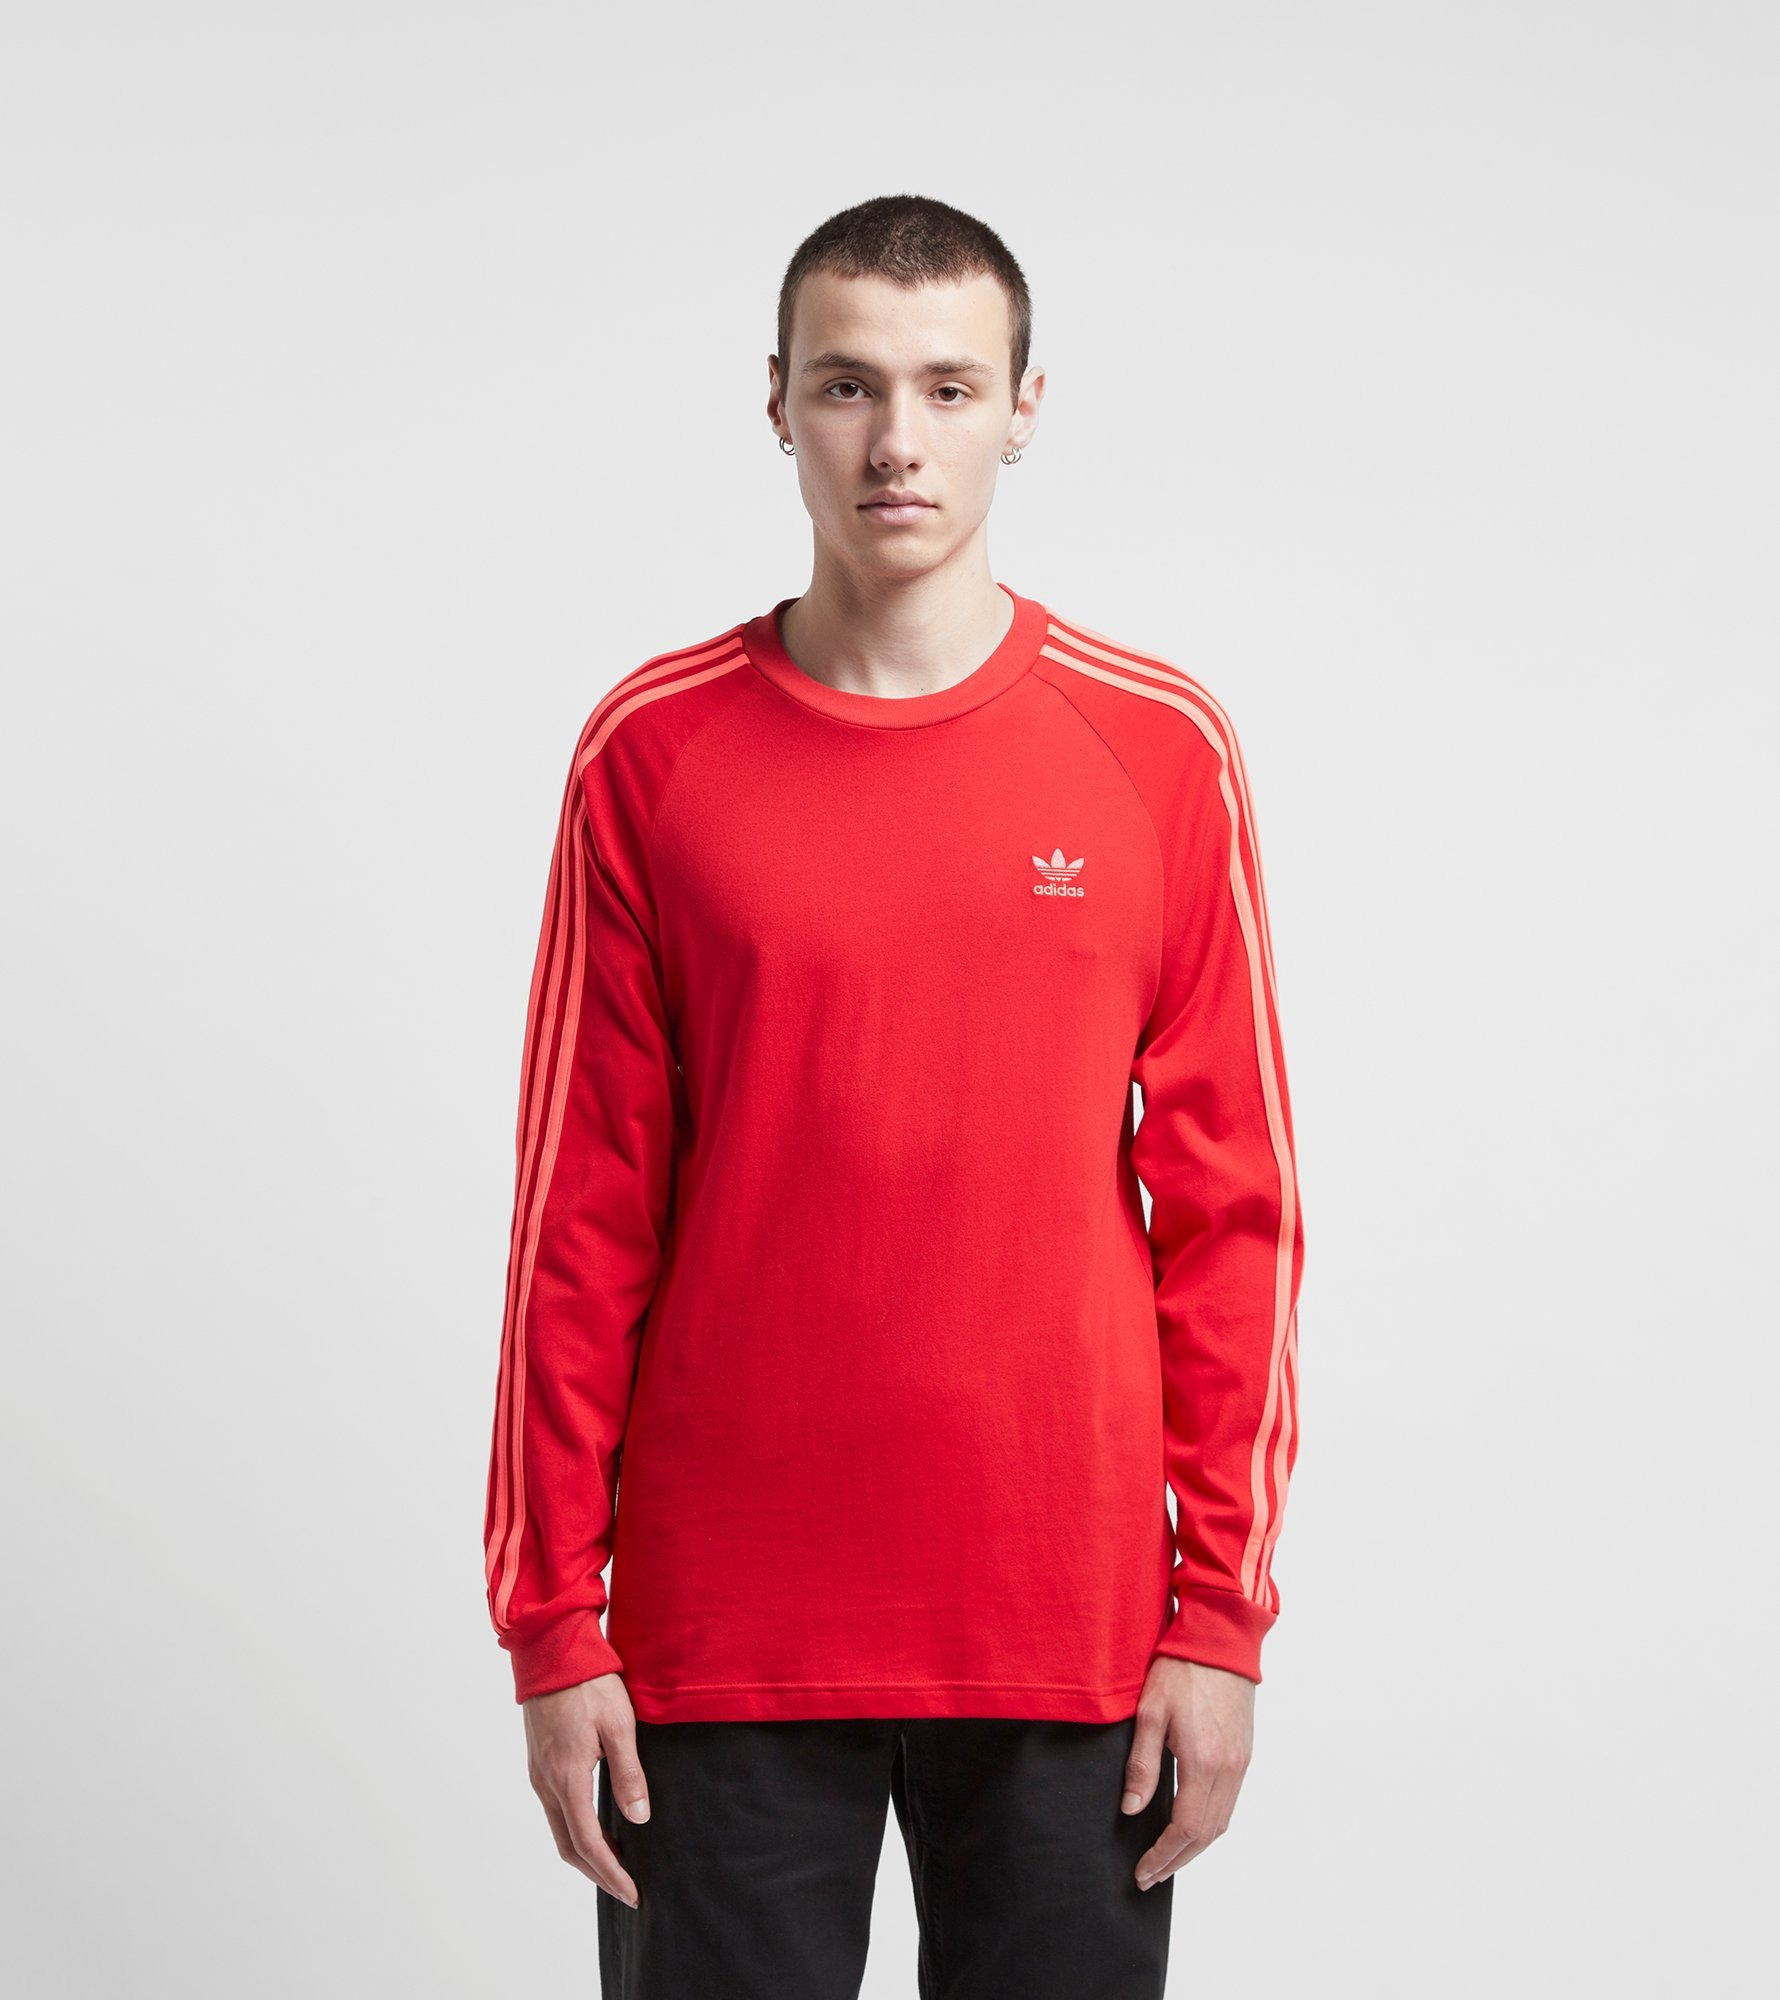 sale uk order get new adidas Originals California Long Sleeve T-Shirt | Size?